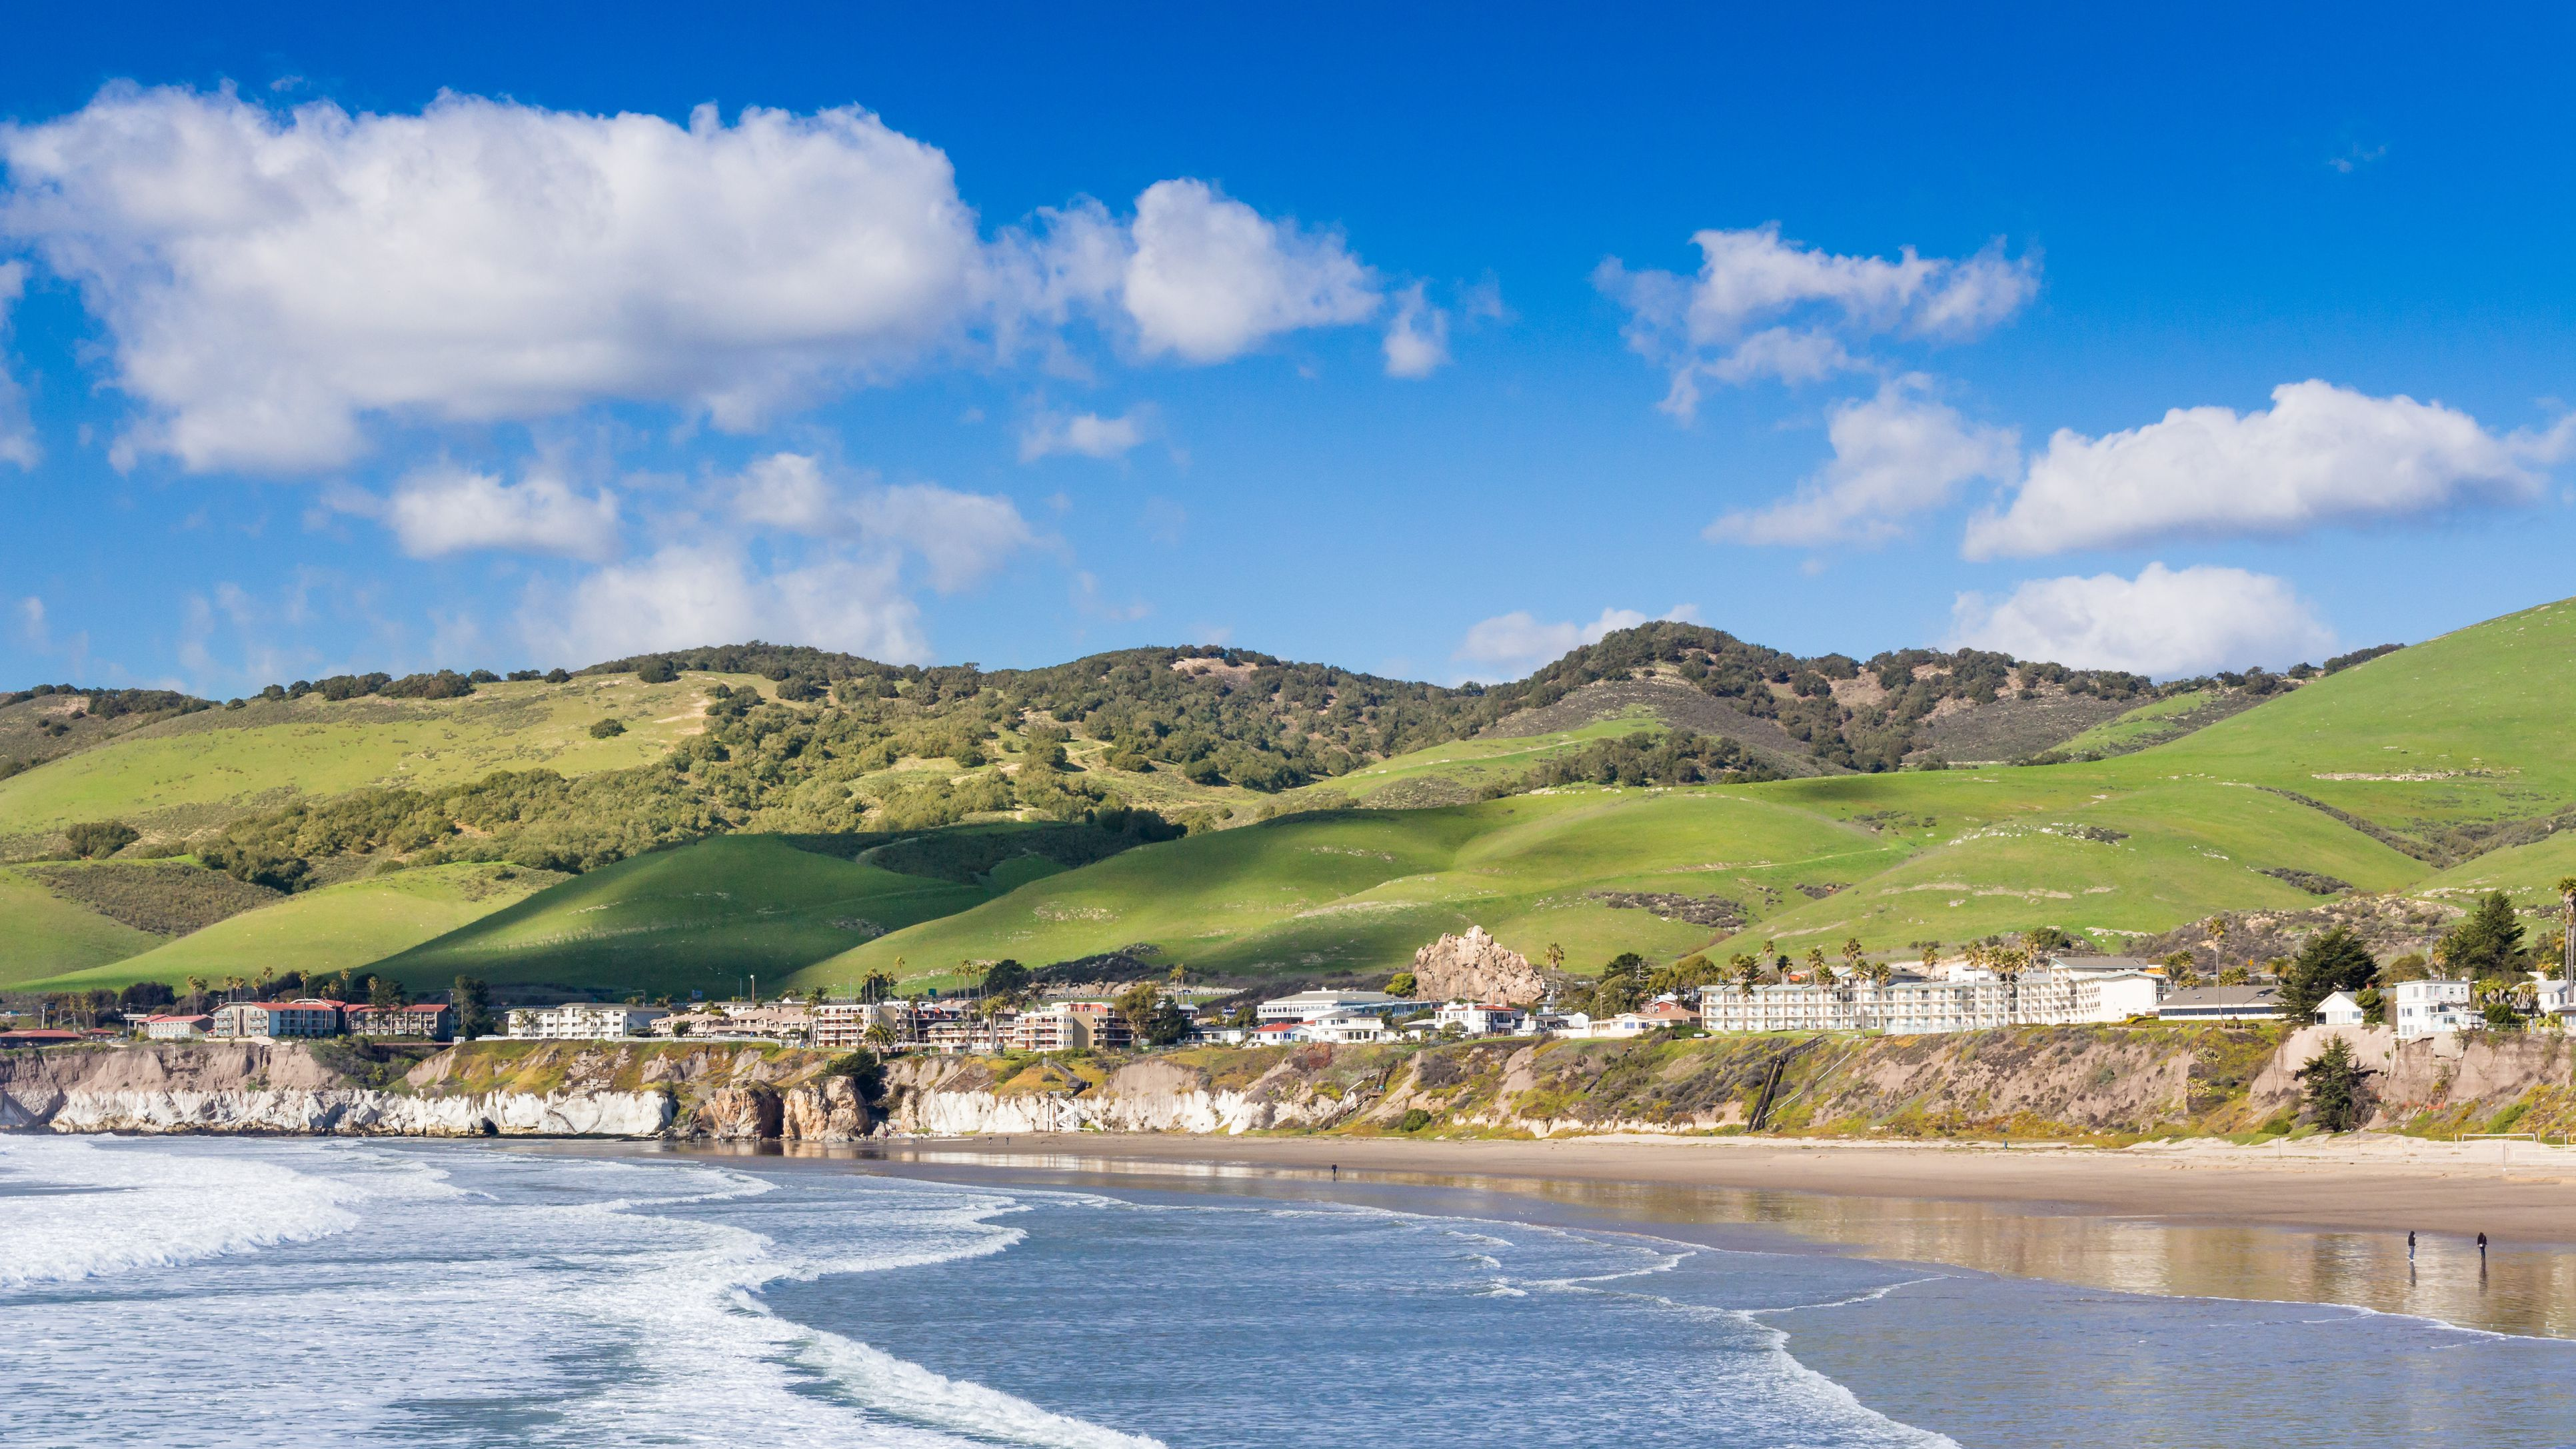 Kid Friendly Things To Do In Pismo Beach